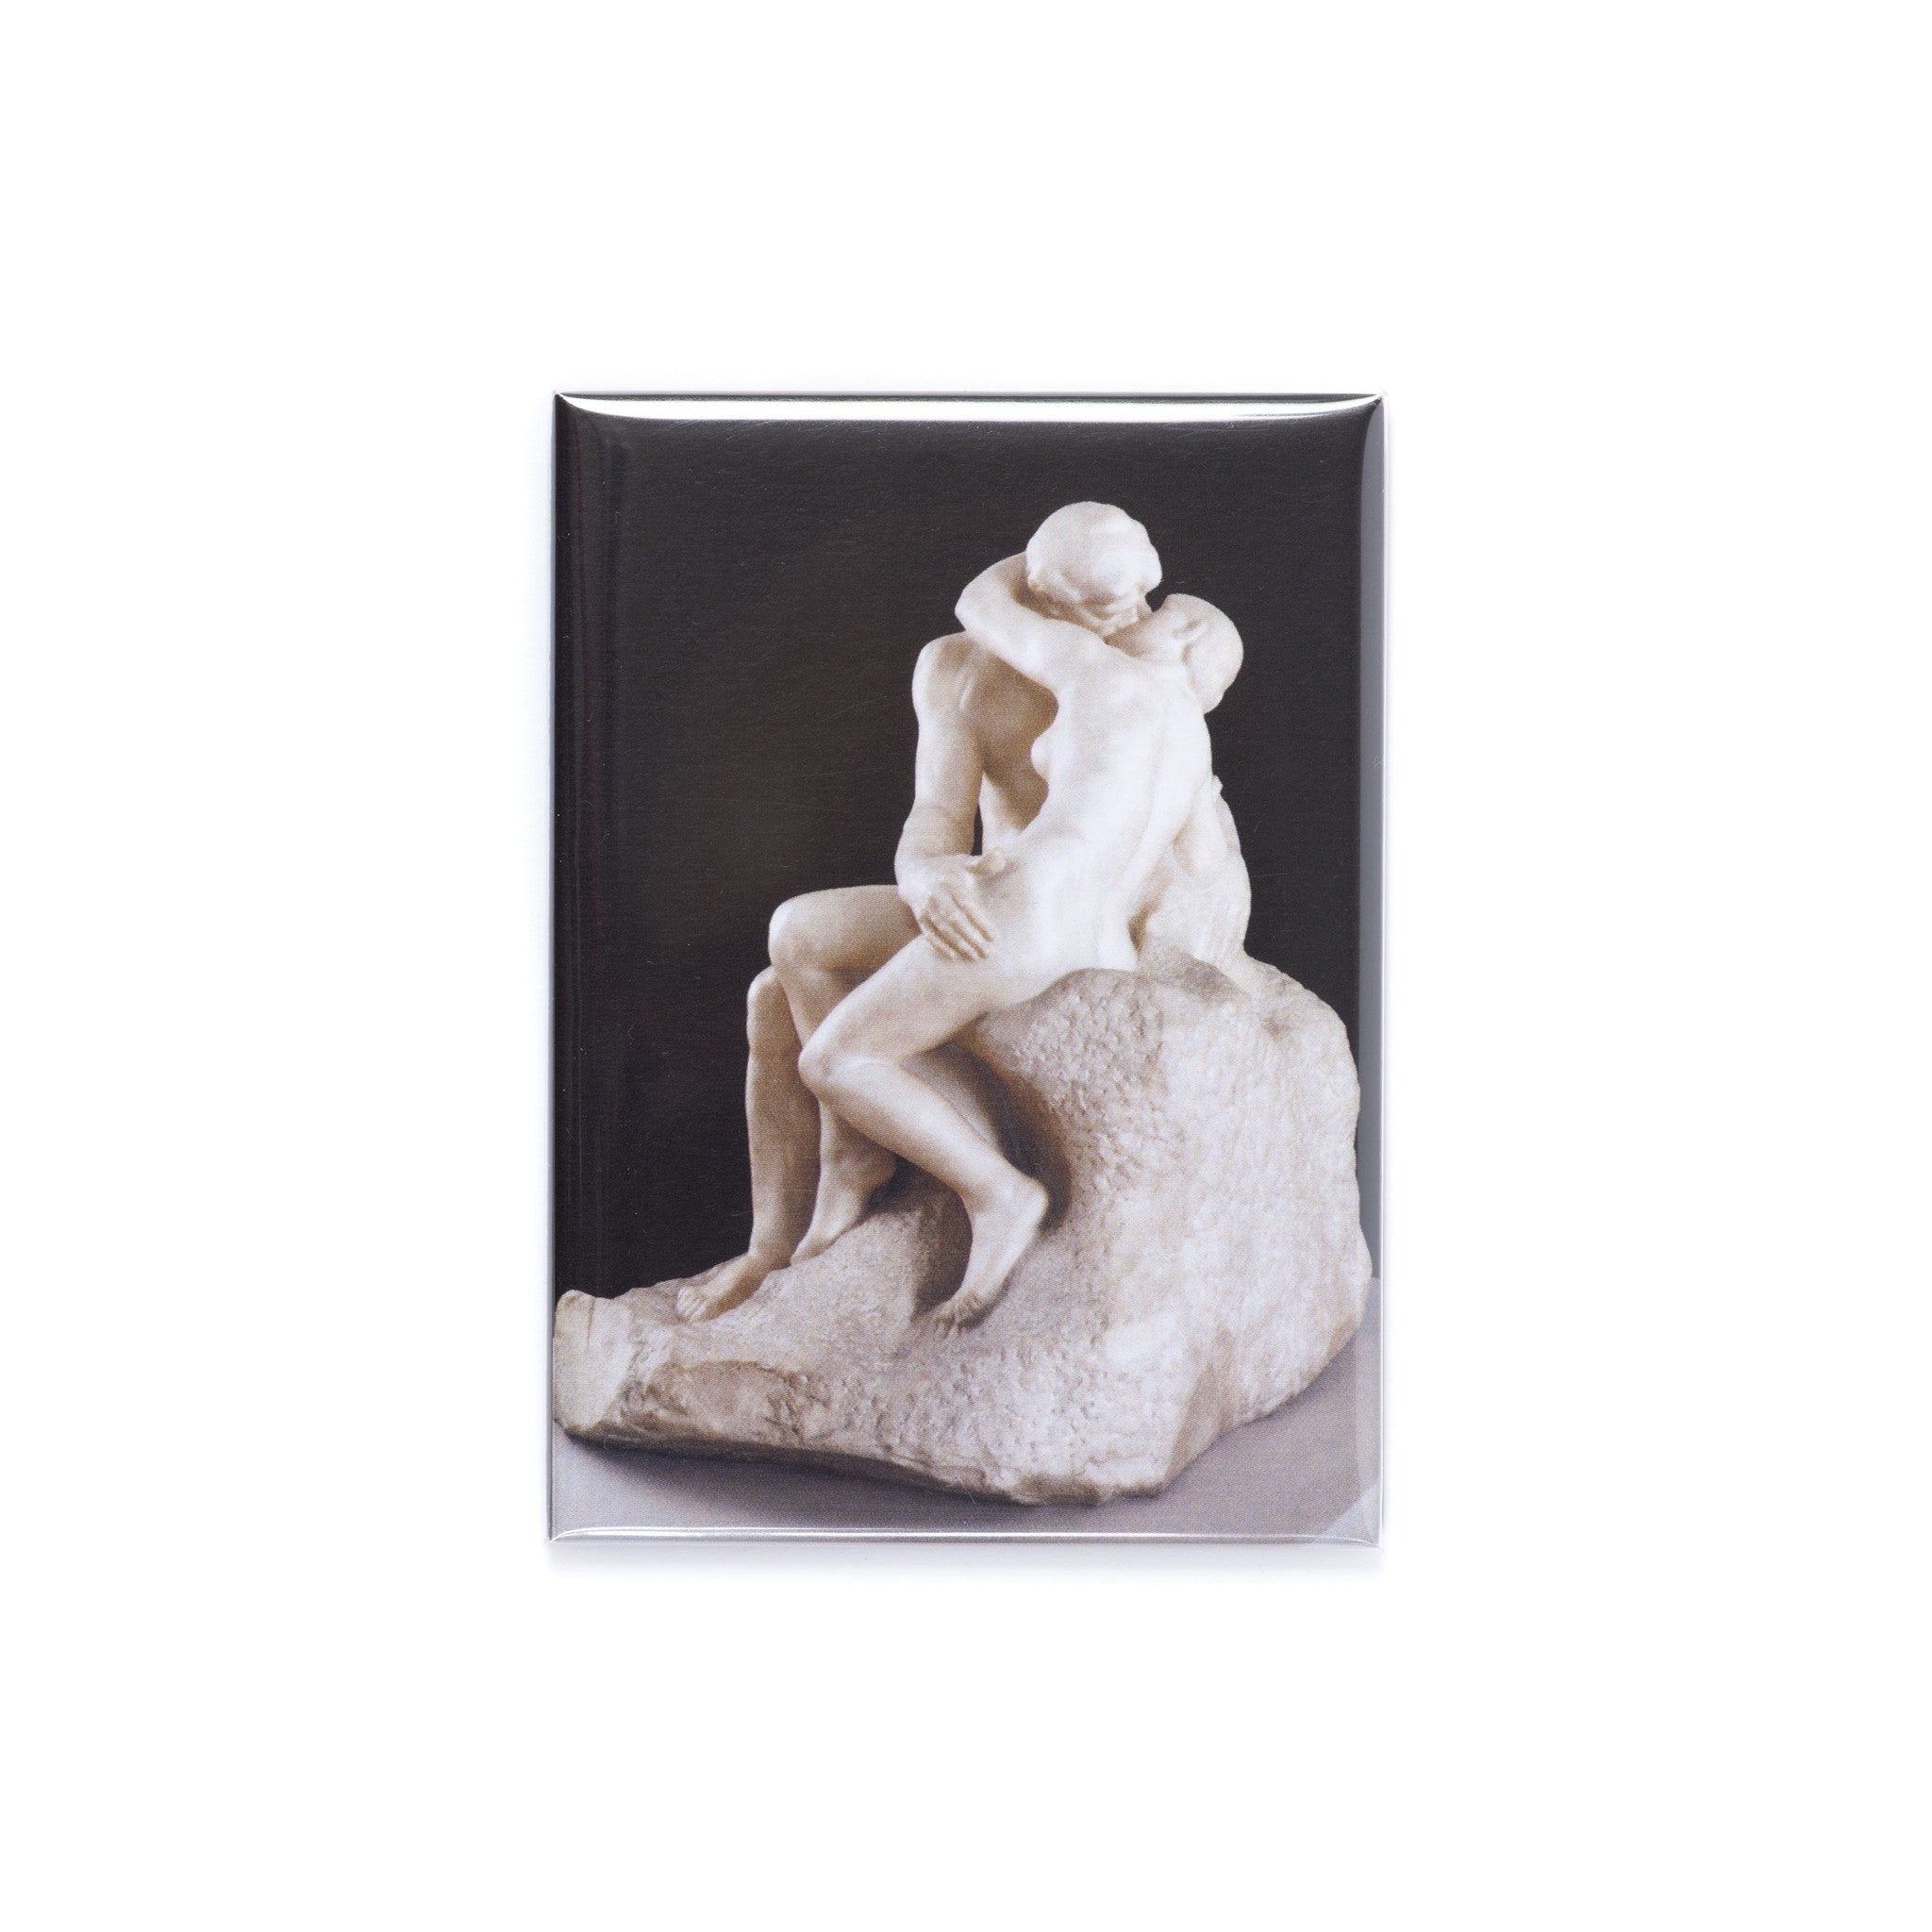 Auguste Rodin 'The Kiss' Magnet Image